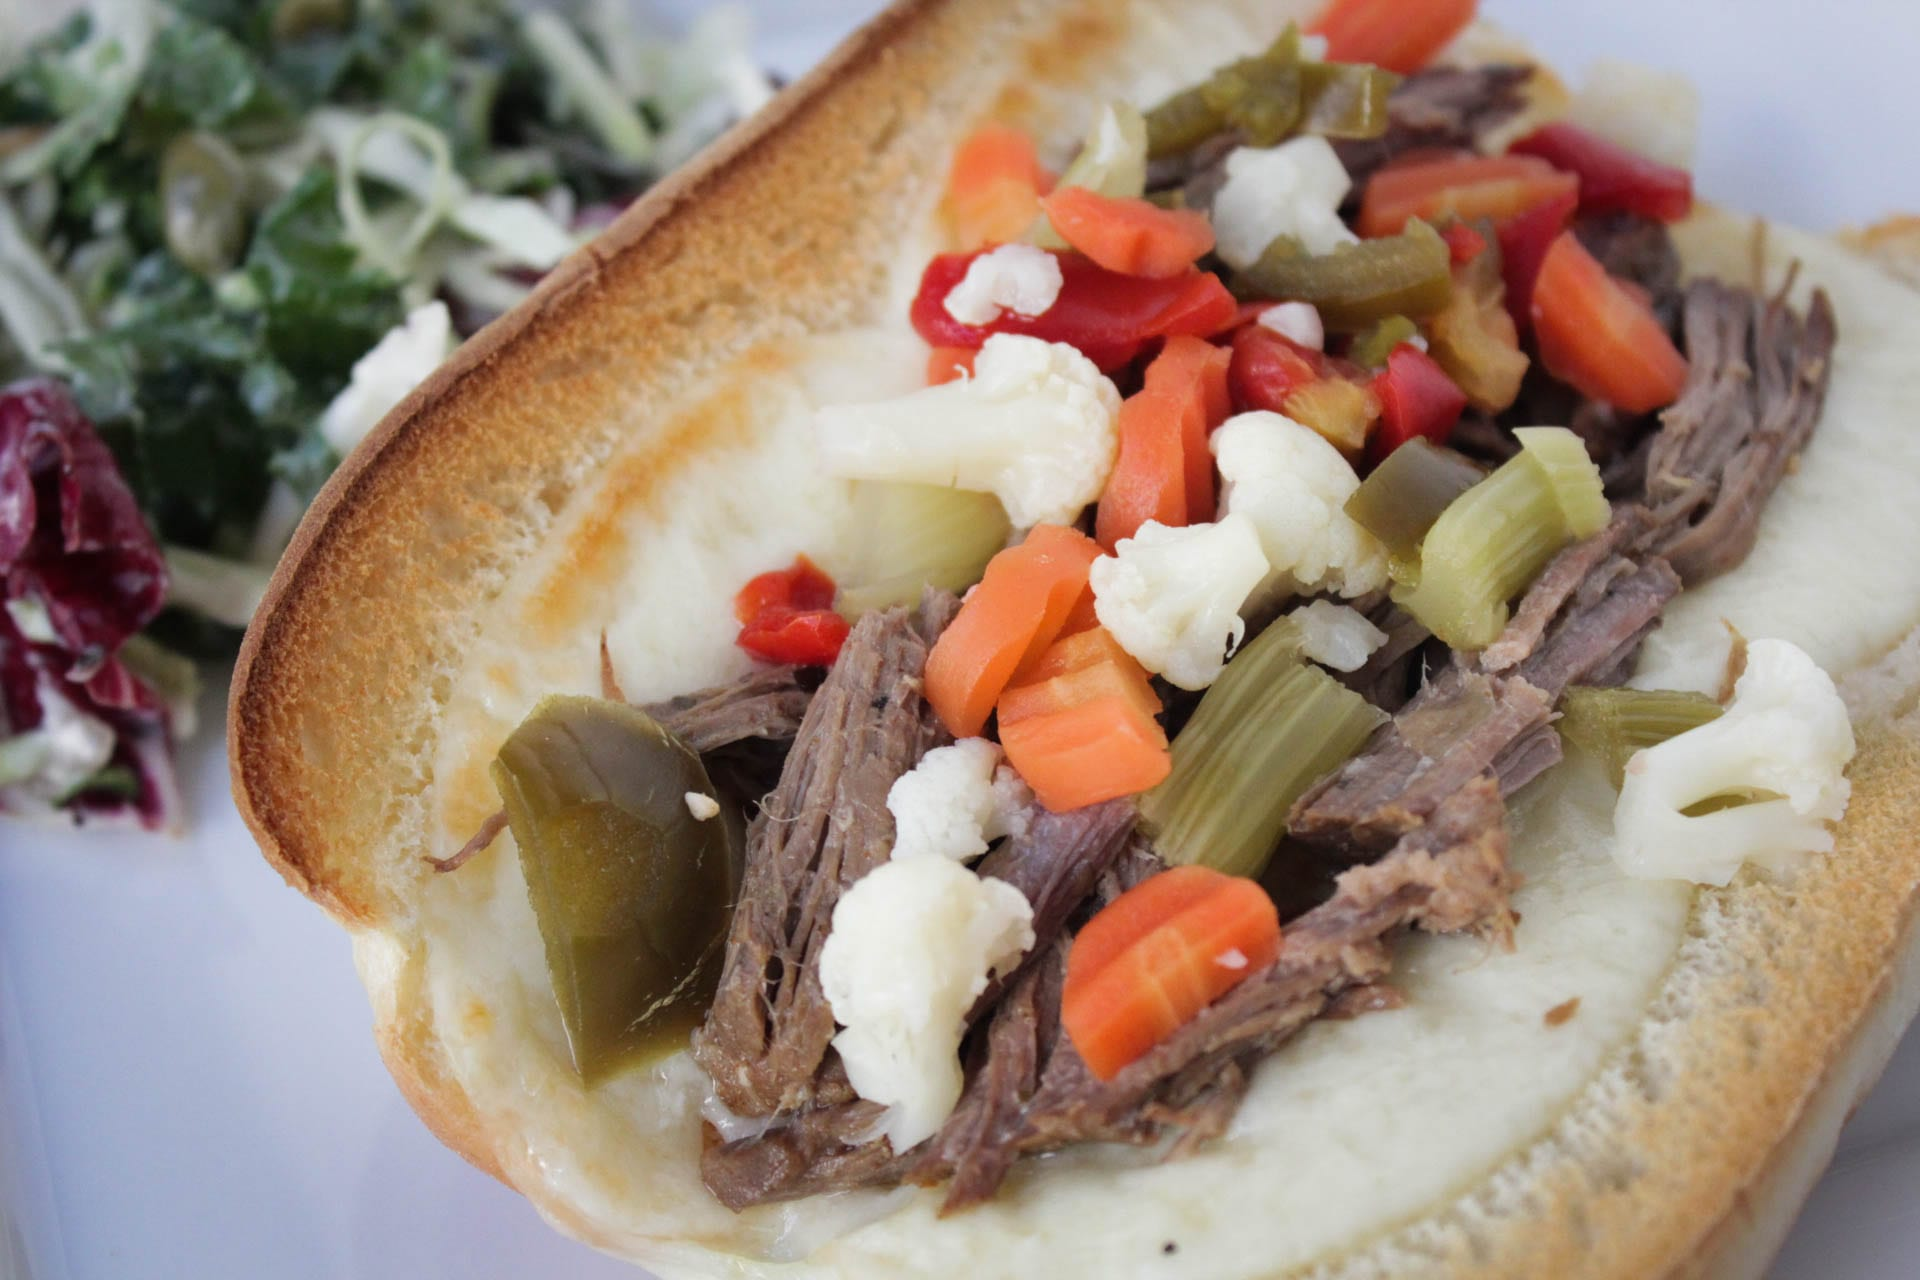 Hot Italian beef sandwiches with provolone cheese and Giardiniera